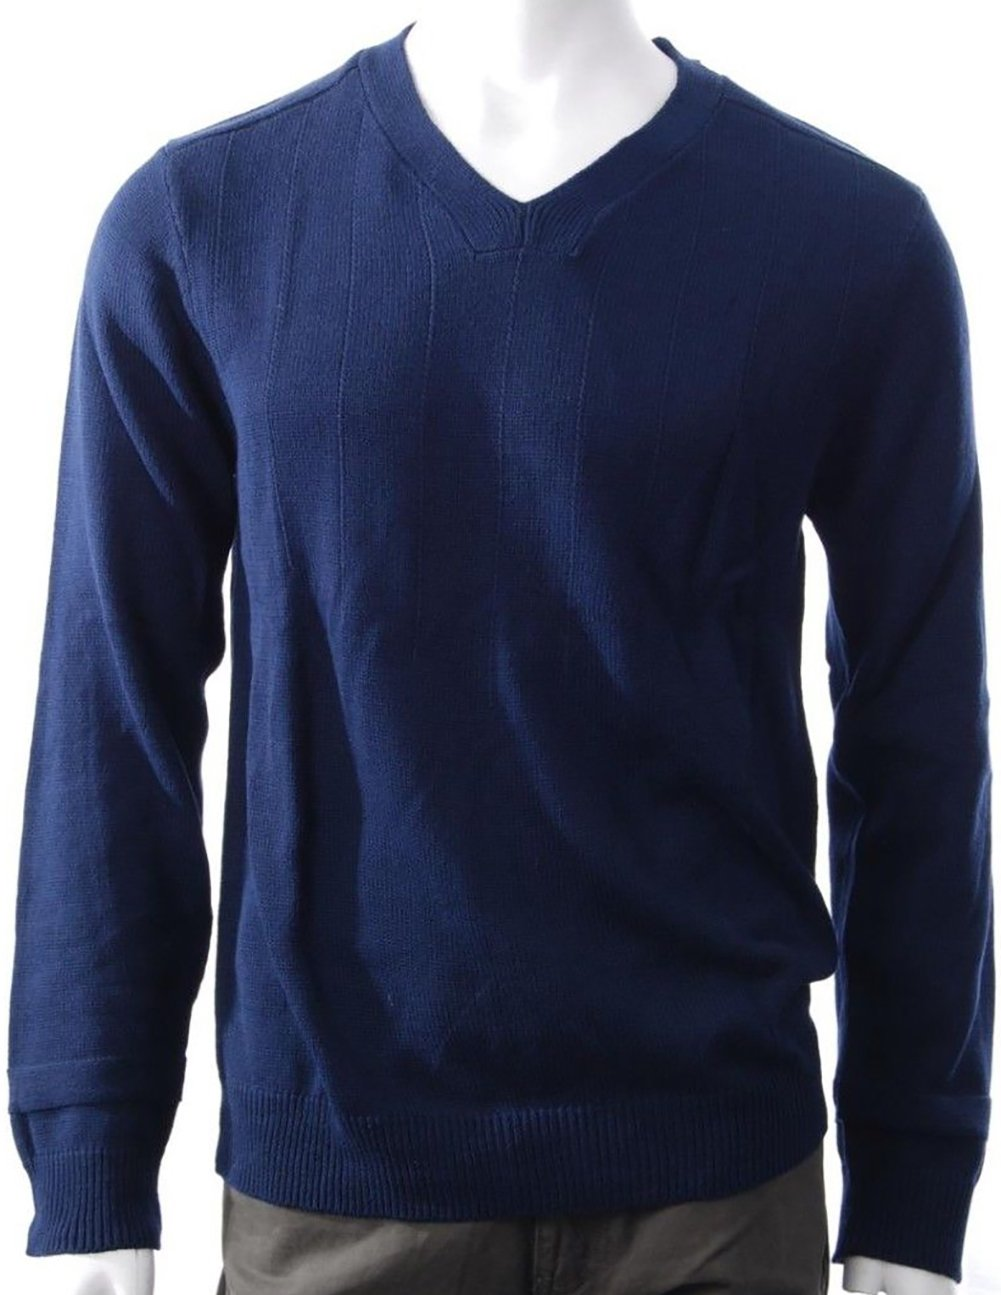 Dylan George Men's V-Neck 100% Cotton Knitted Sweater Long Sleeve Navy- Large